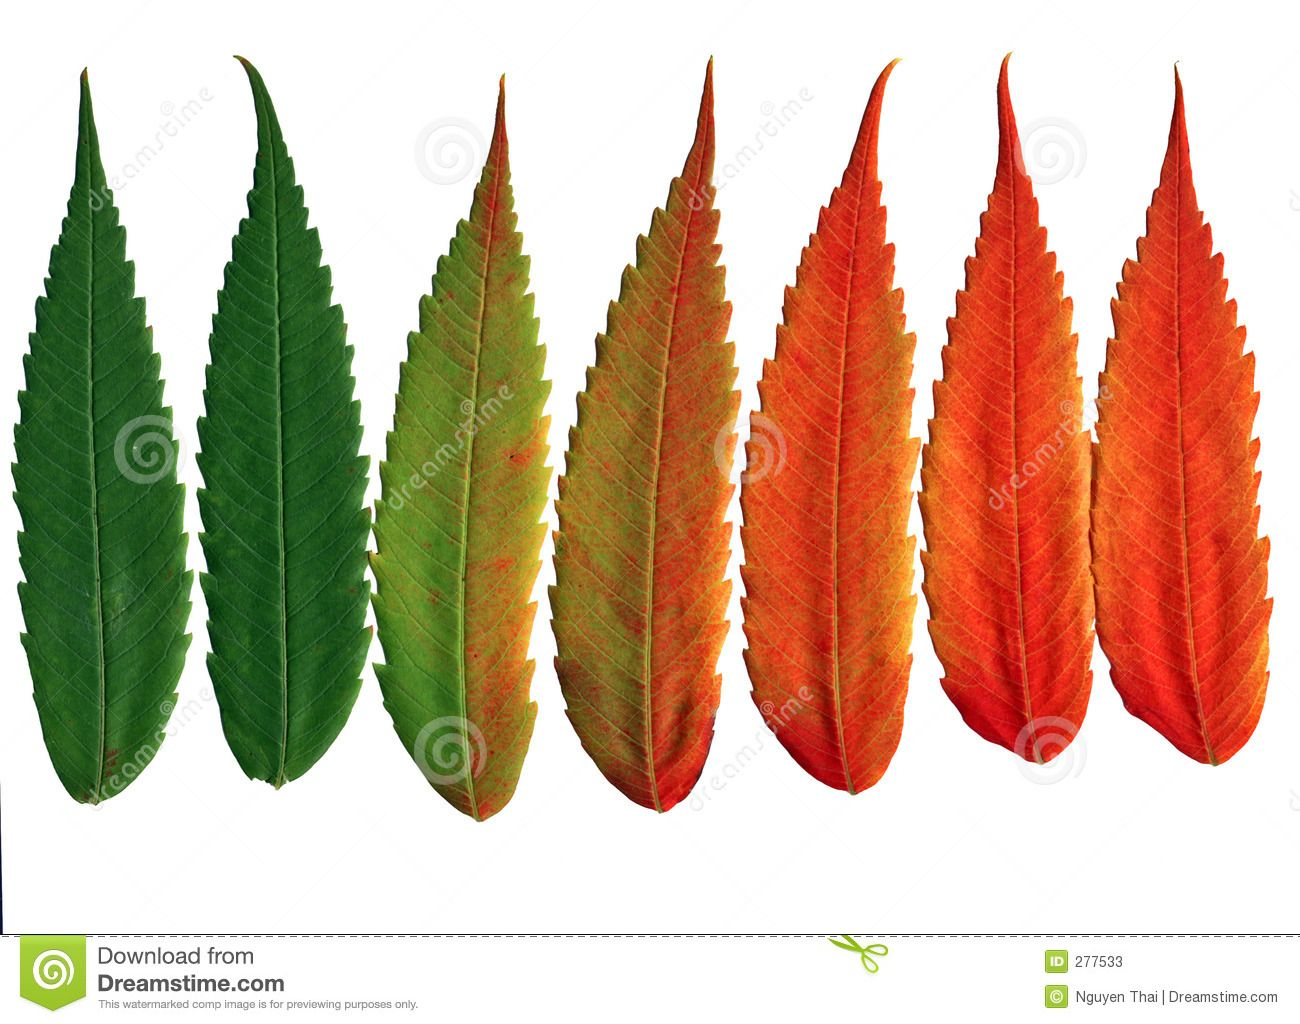 The leaves of the black walnut tree change colors in the